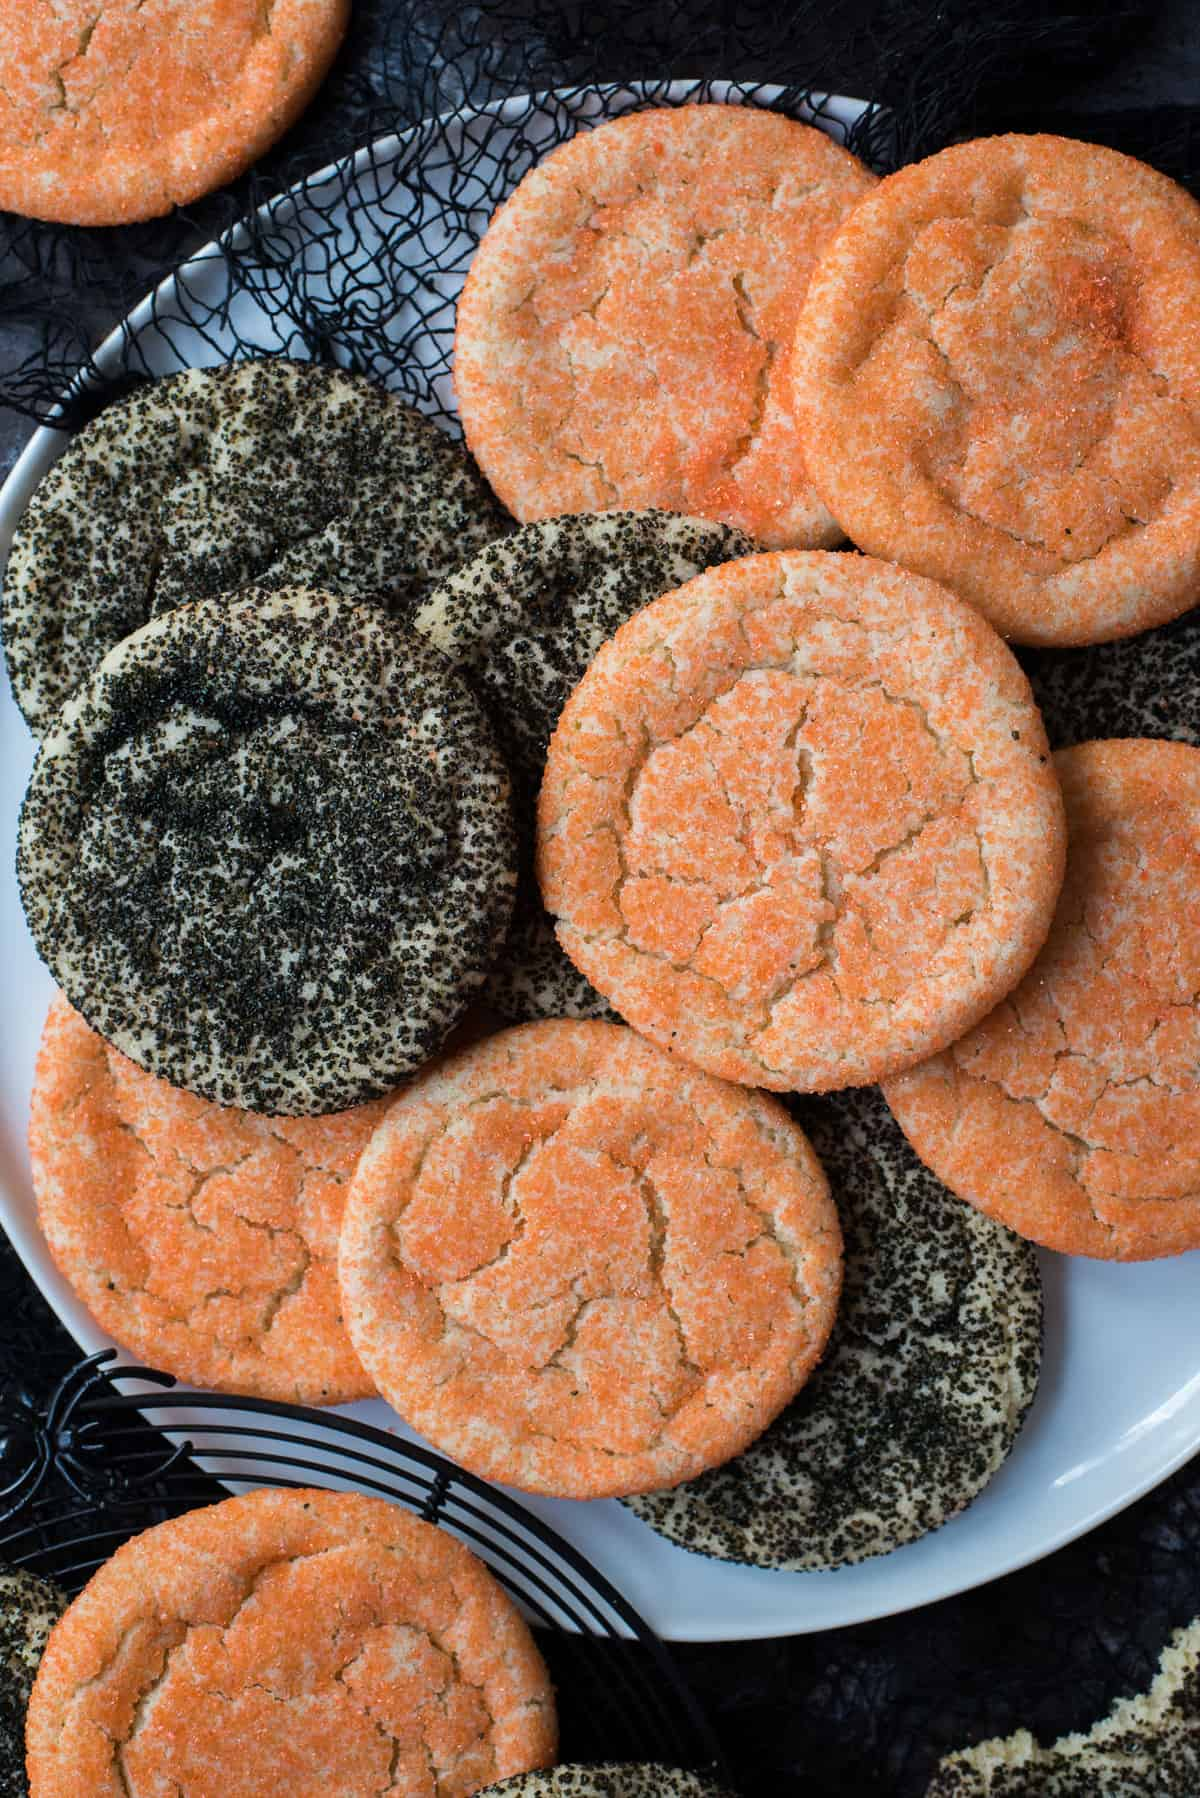 orange and black sugar cookies piled on white plate with black fabric on black background